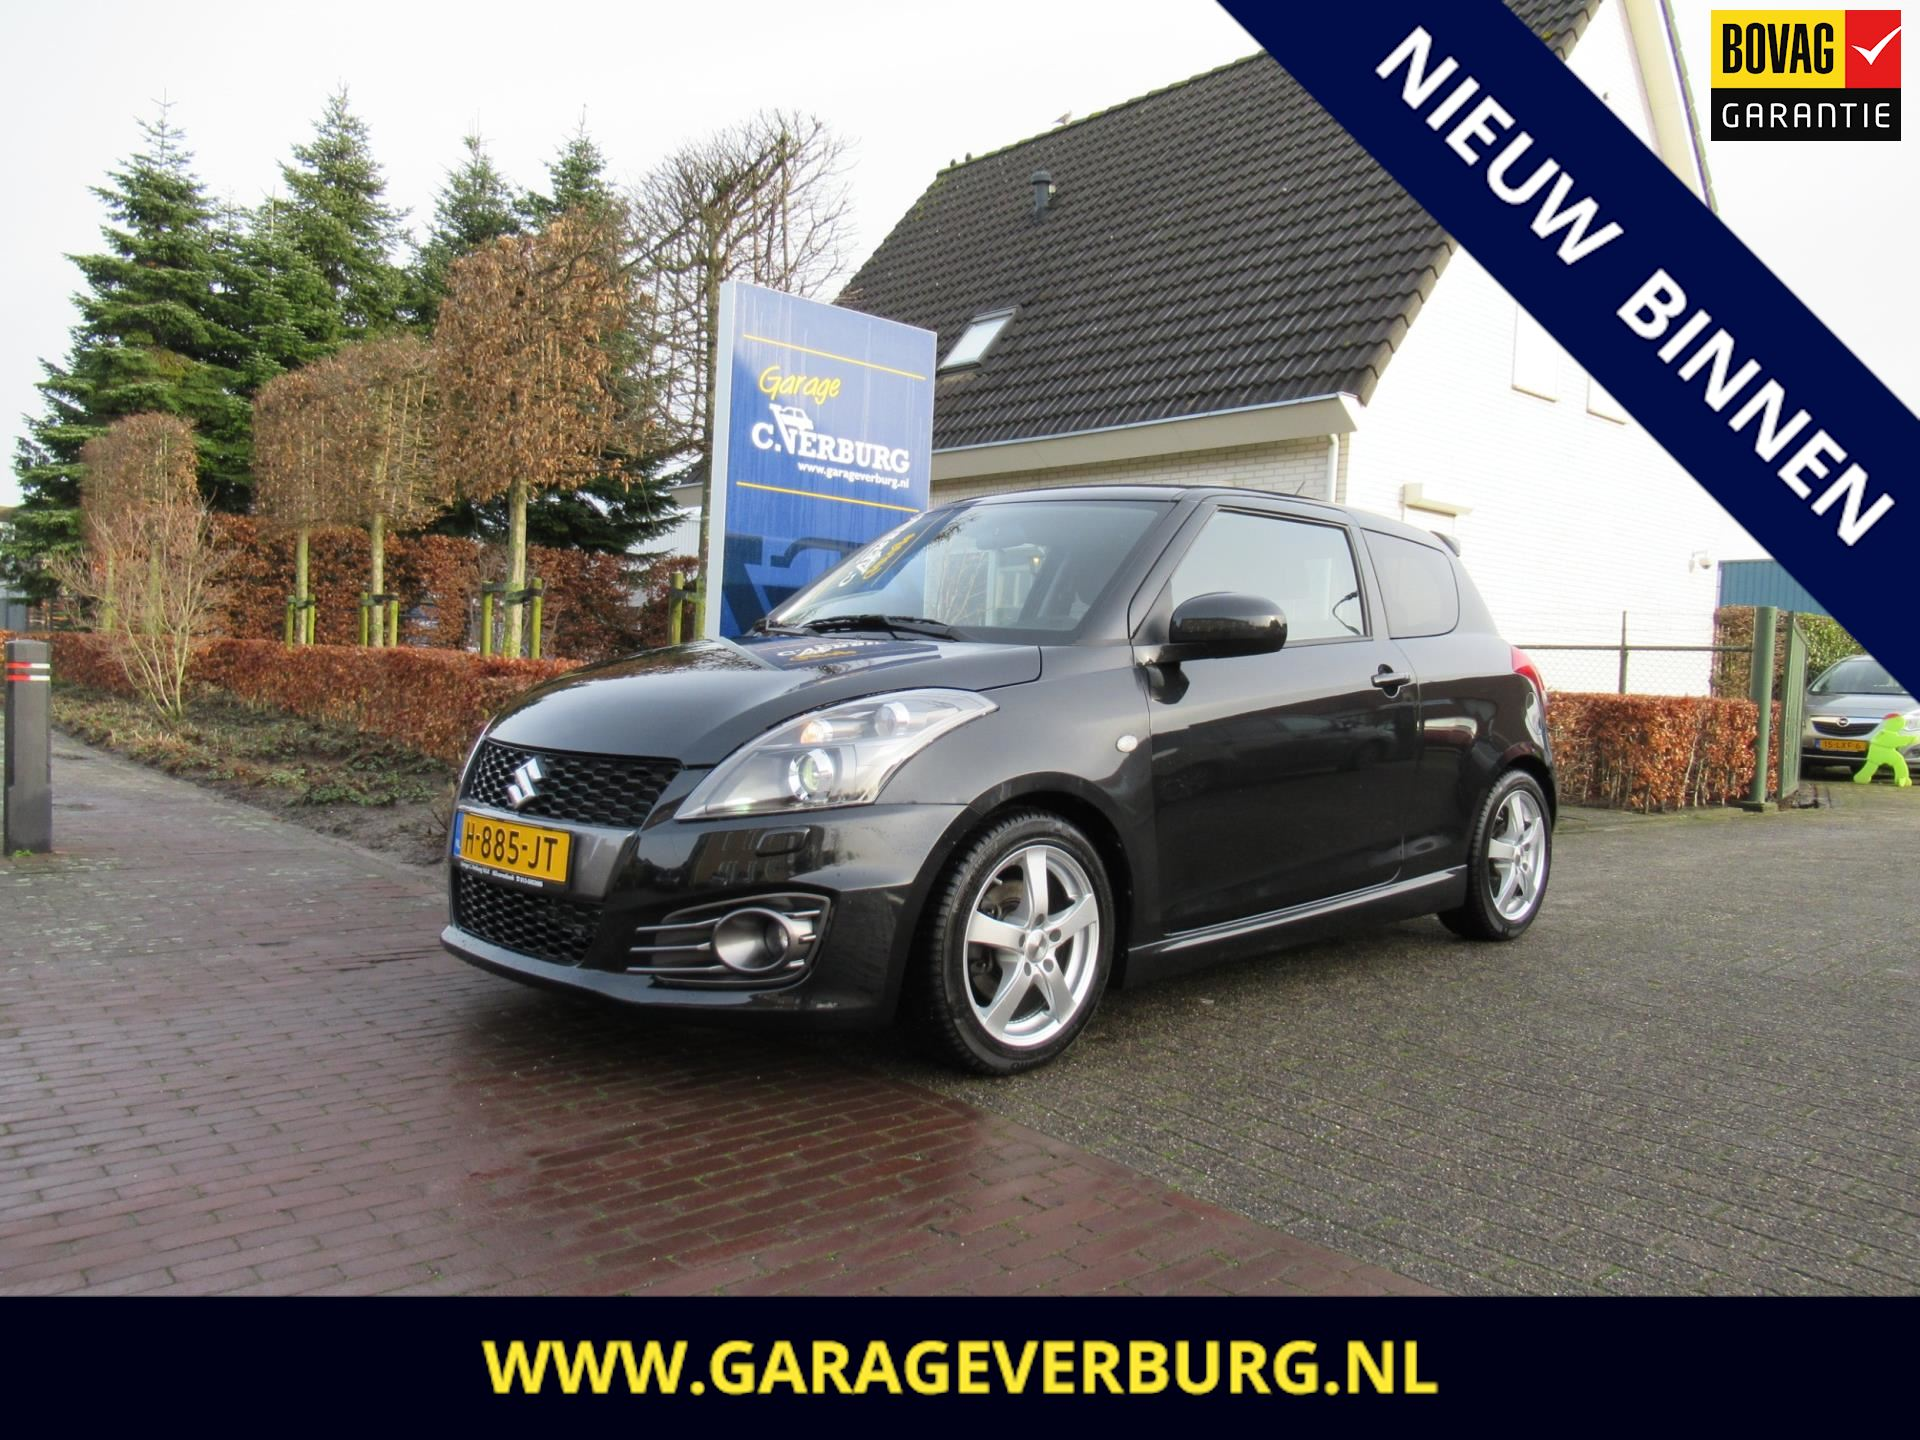 Suzuki Swift occasion - Garage C. Verburg VOF